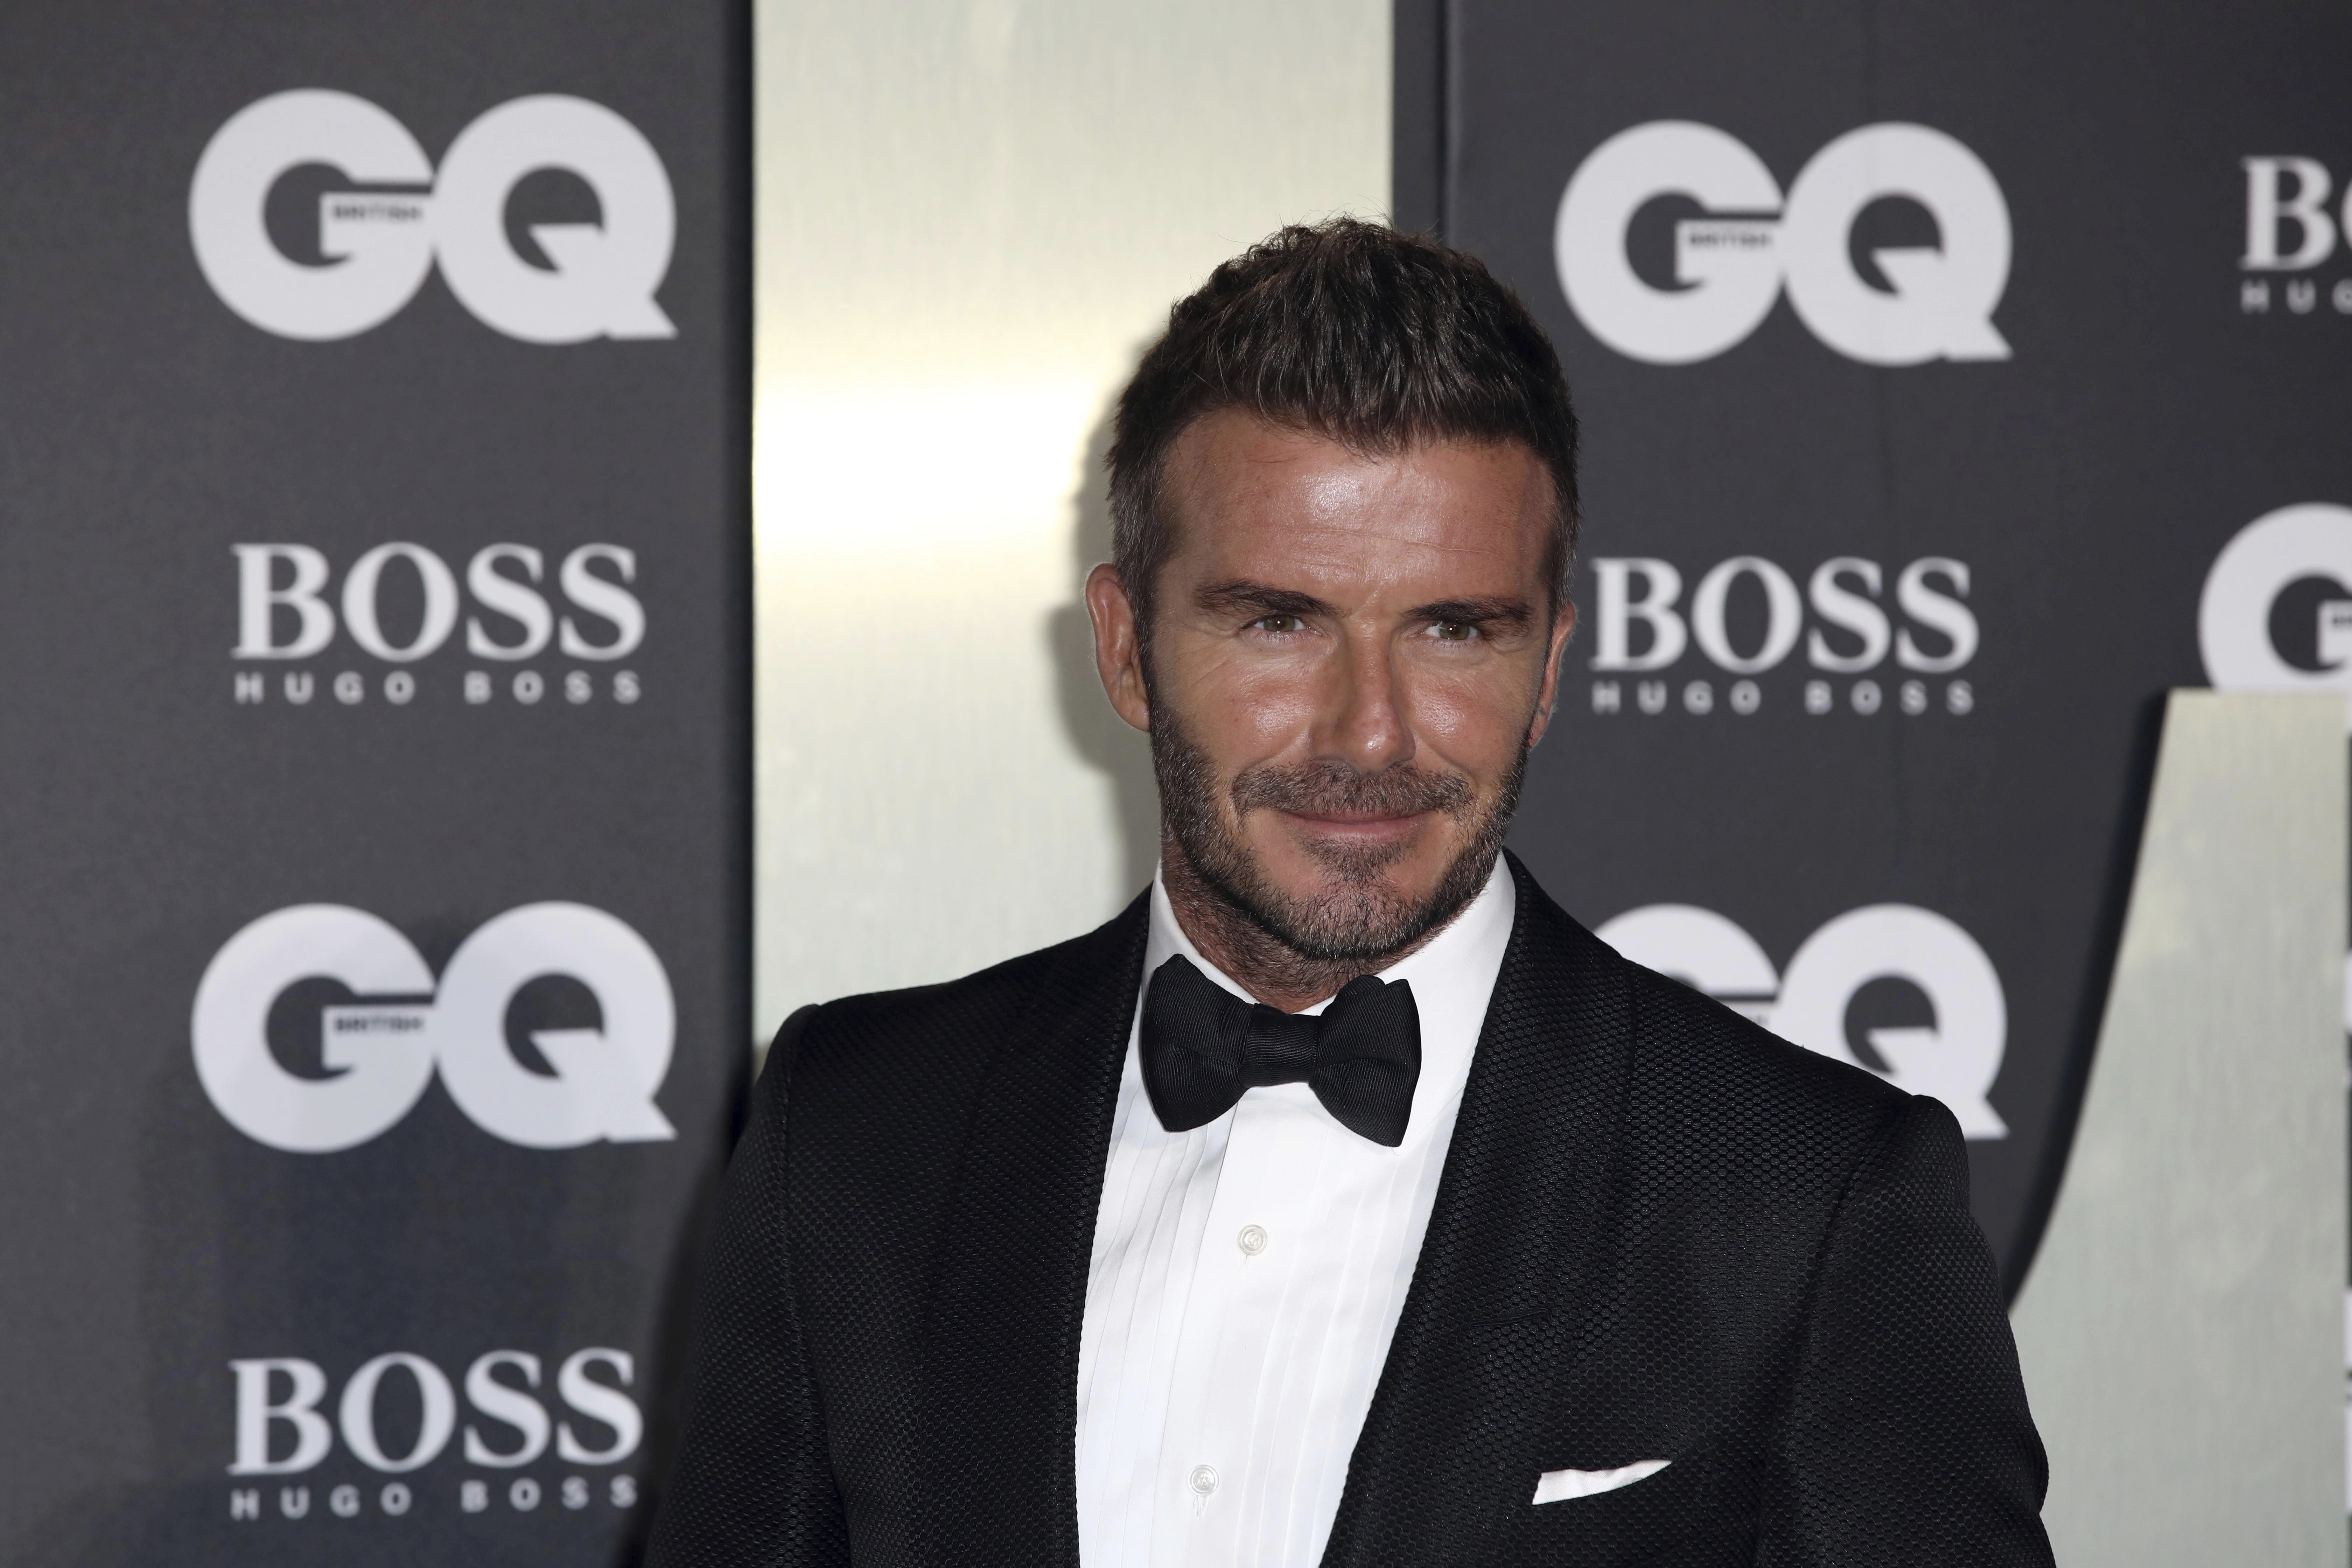 Footballer David Beckham poses for photographers on arrival at the GQ Men of the year Awards in central London on Tuesday, Sept. 3, 2019. (Photo by Grant Pollard/Invision/AP)